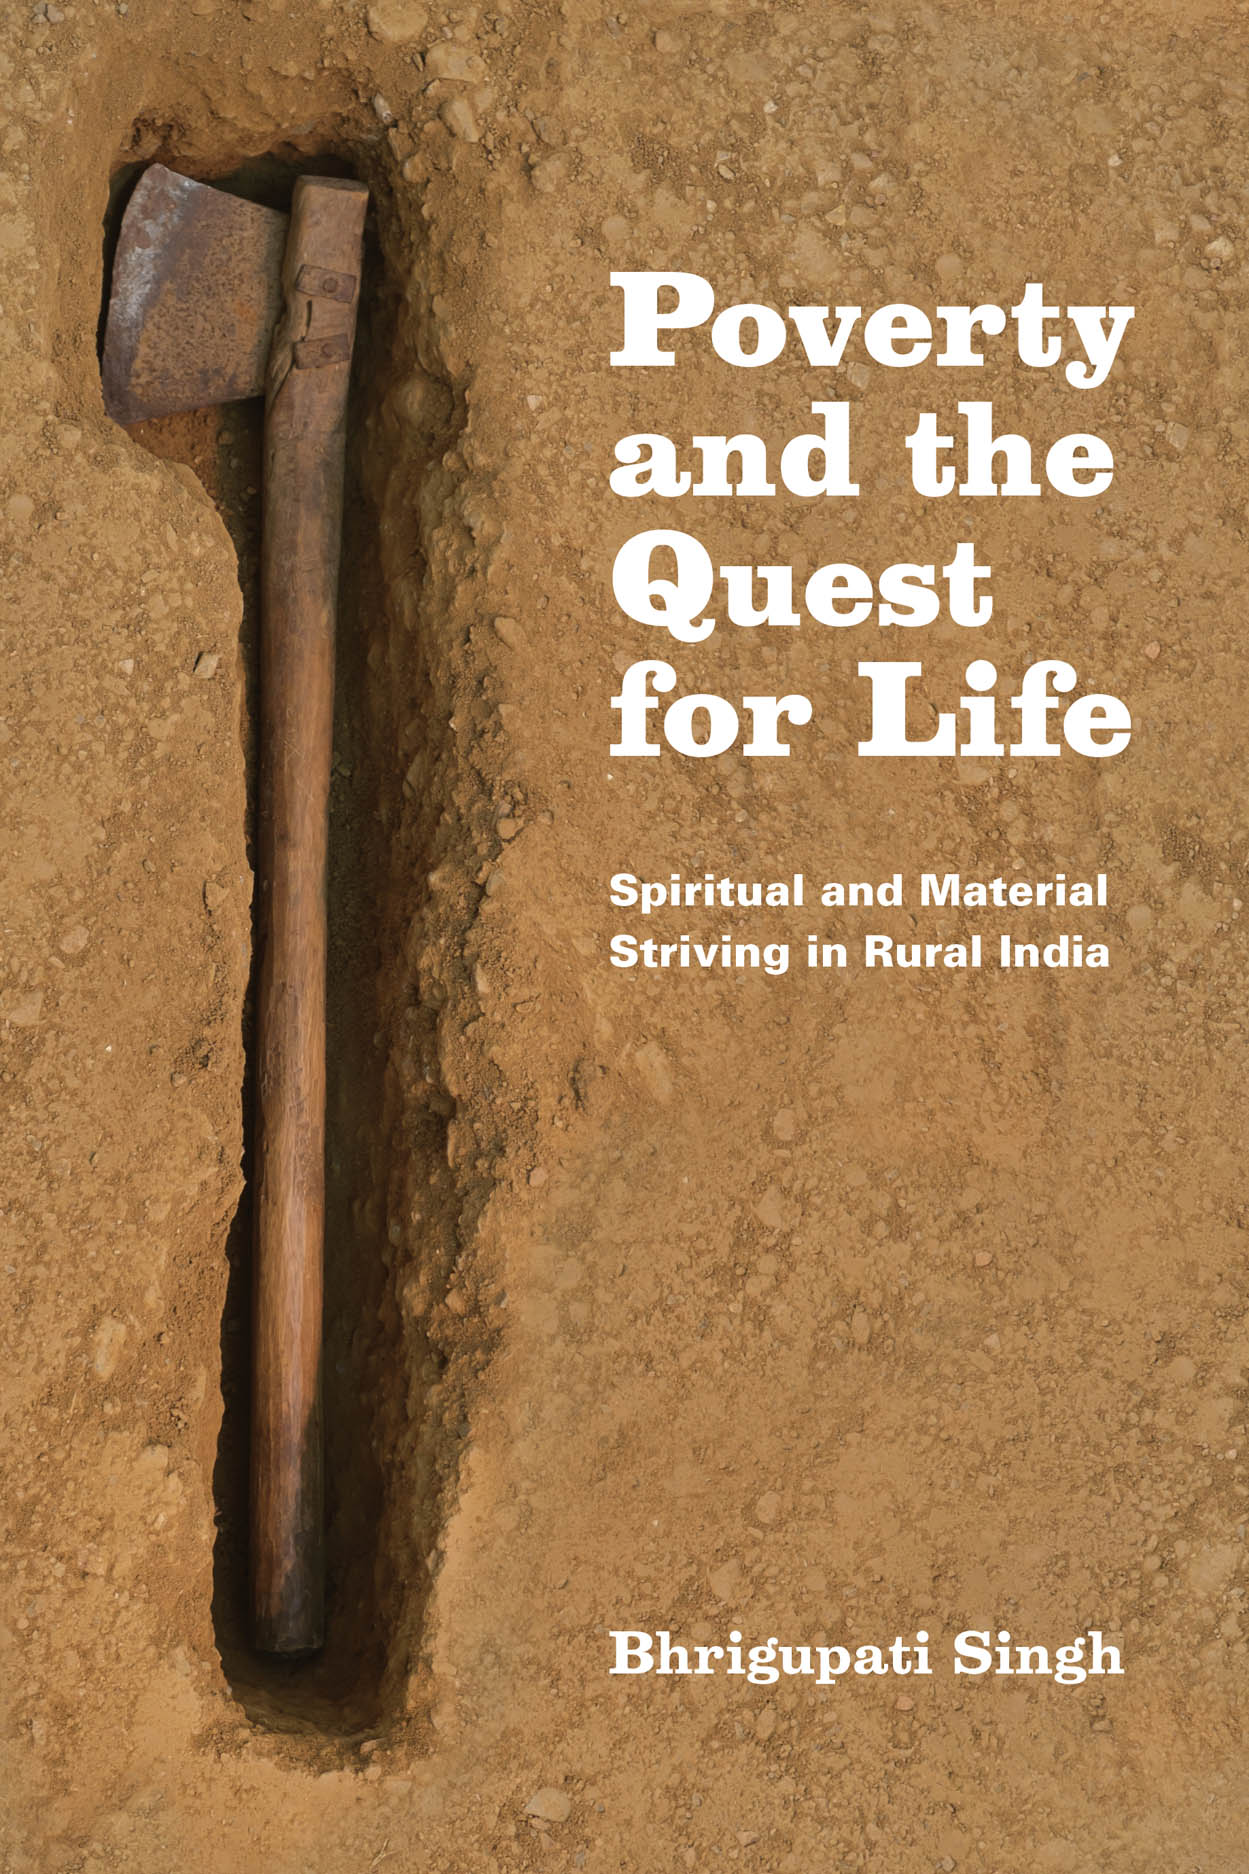 Poverty and the Quest for Life: Spiritual and Material Striving in Rural India